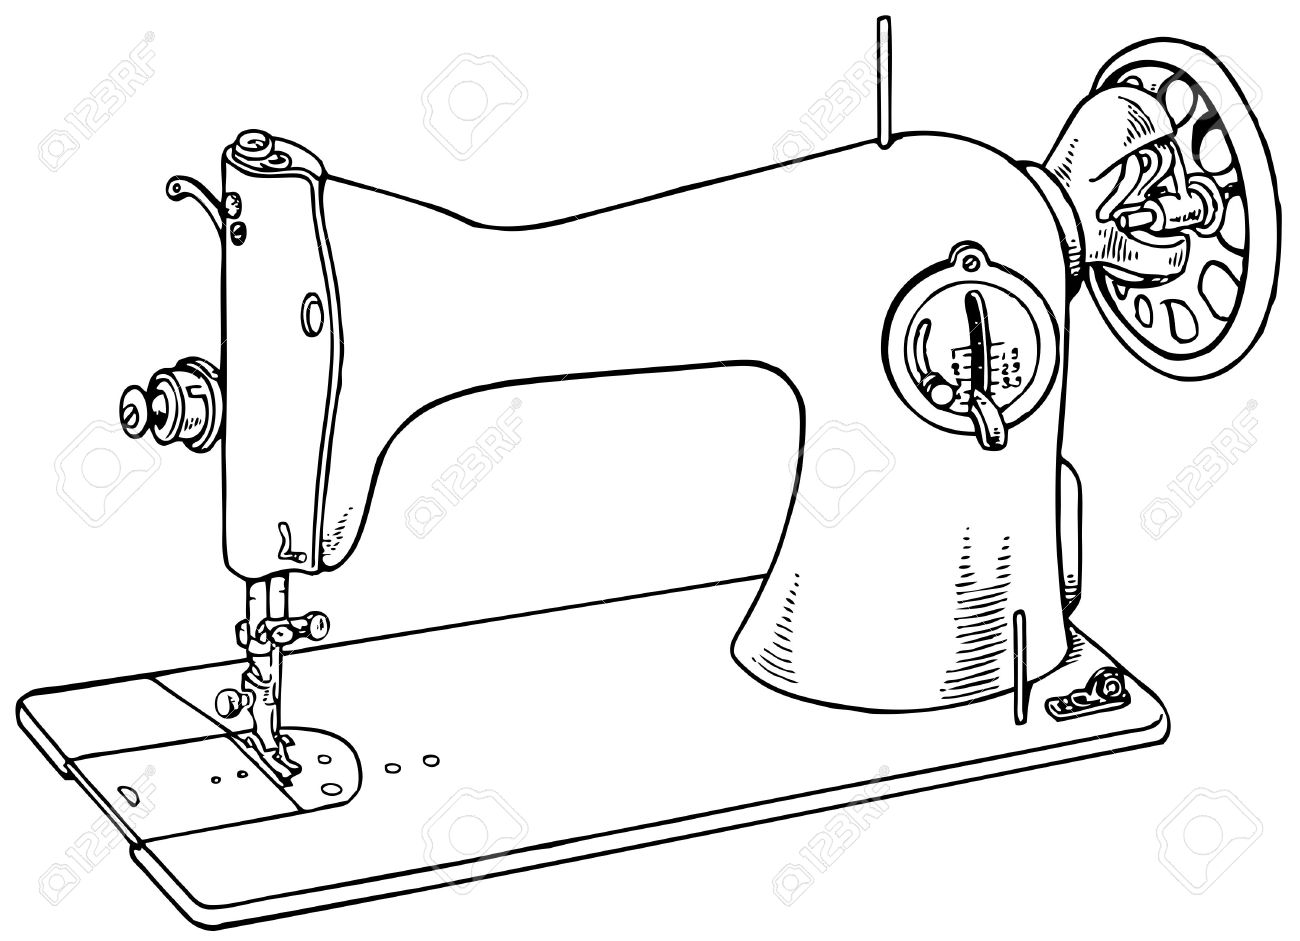 Sewing machine isolated on white background Stock Vector - 11380571